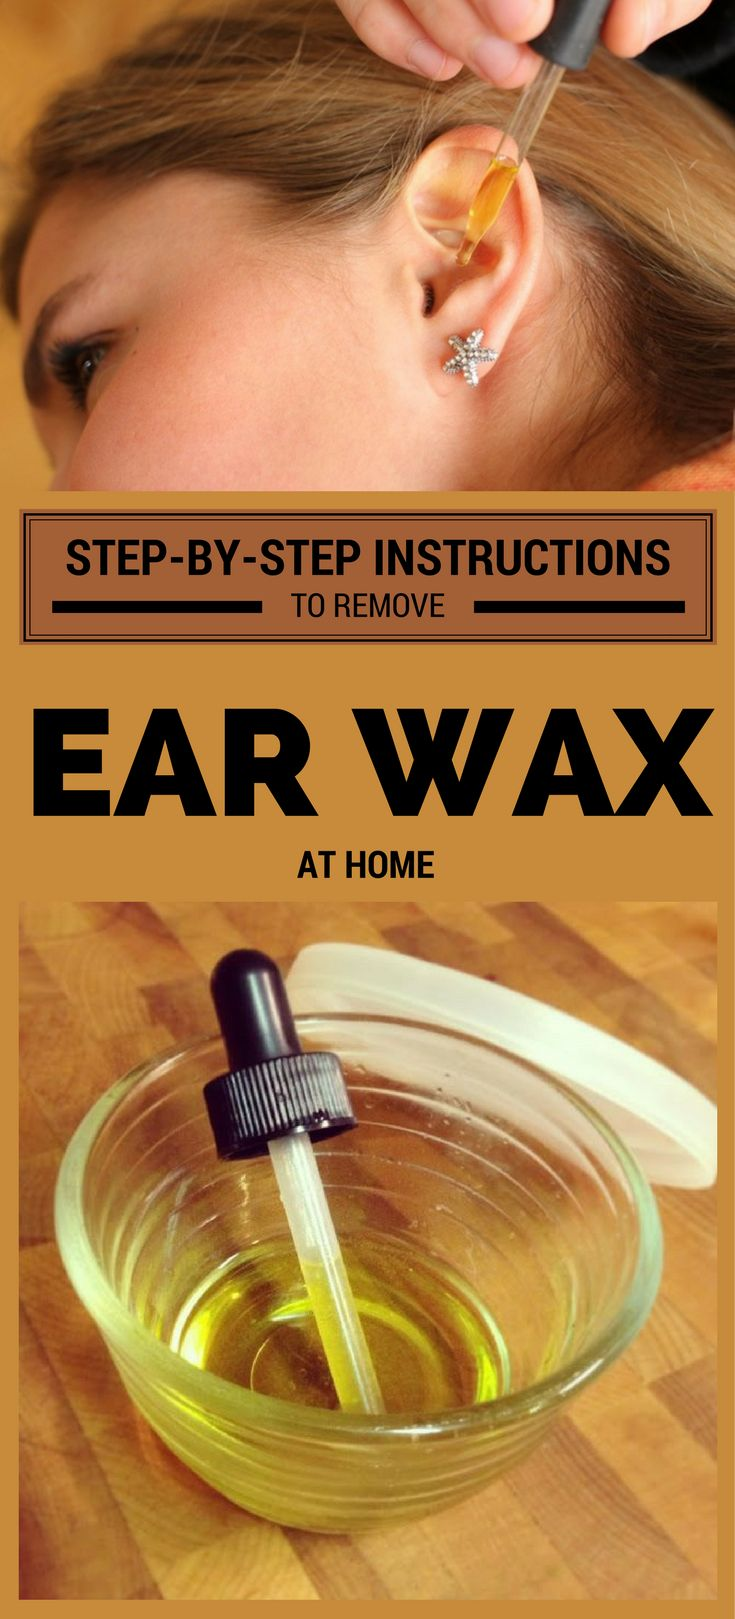 Step-By-Step Instructions To Remove Ear Wax At Home